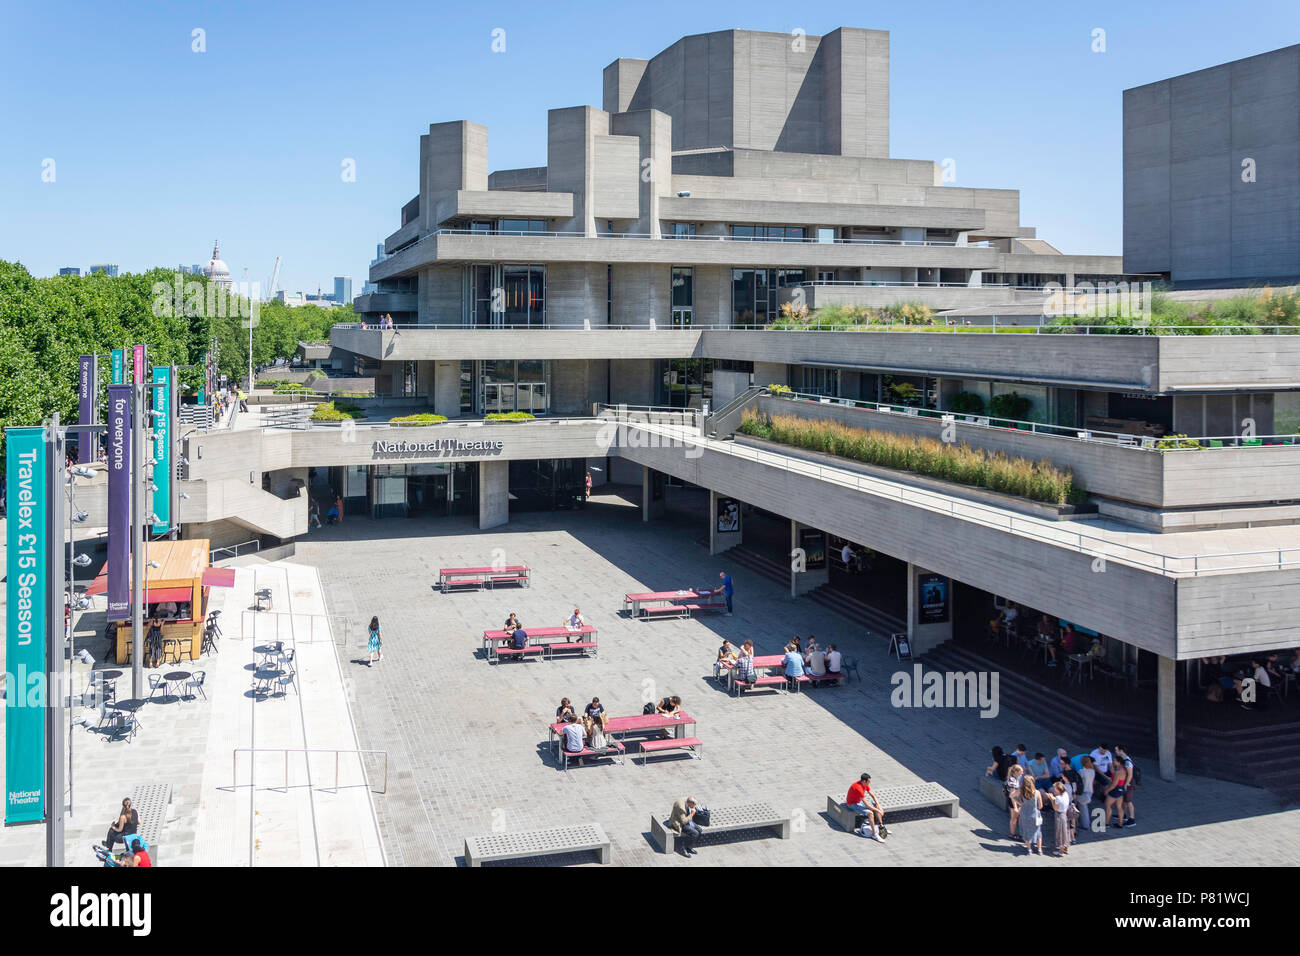 National Theatre, Southbank Centre, South Bank, London Borough of Lambeth, Greater London, England, United Kingdom - Stock Image